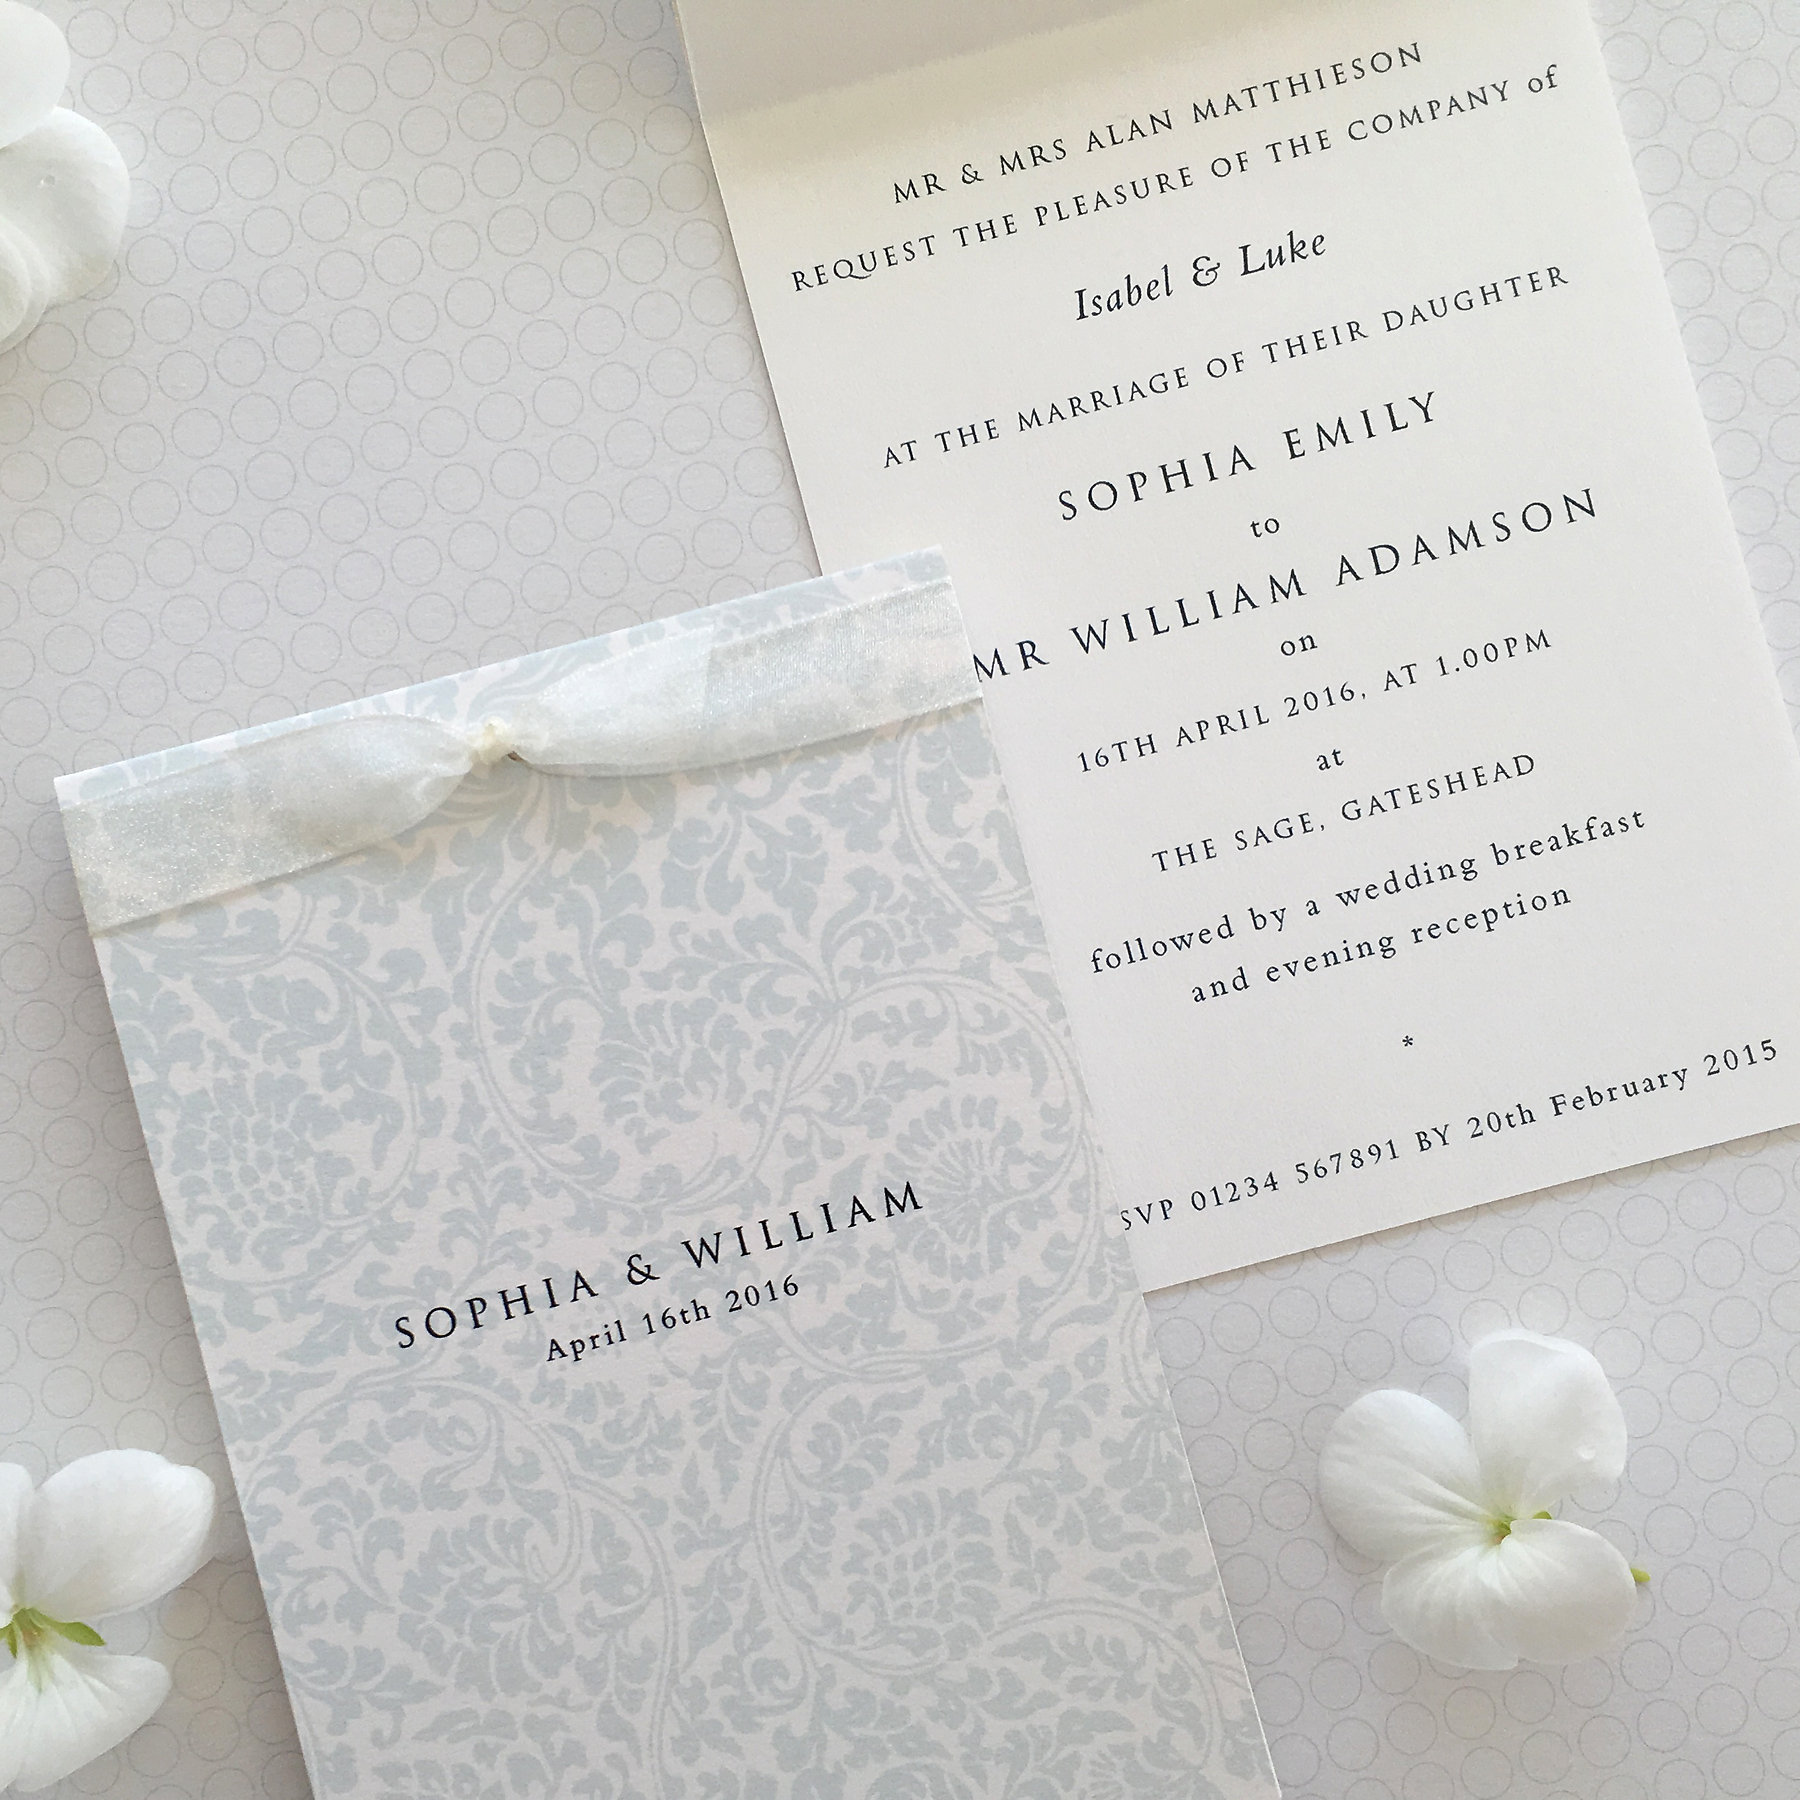 Mysite scroll wedding invitation this pretty timeless design has a soft damask background pattern and a tied bridal white ribbon the invitation printed on 300gm fine art paper is a6 in monicamarmolfo Choice Image